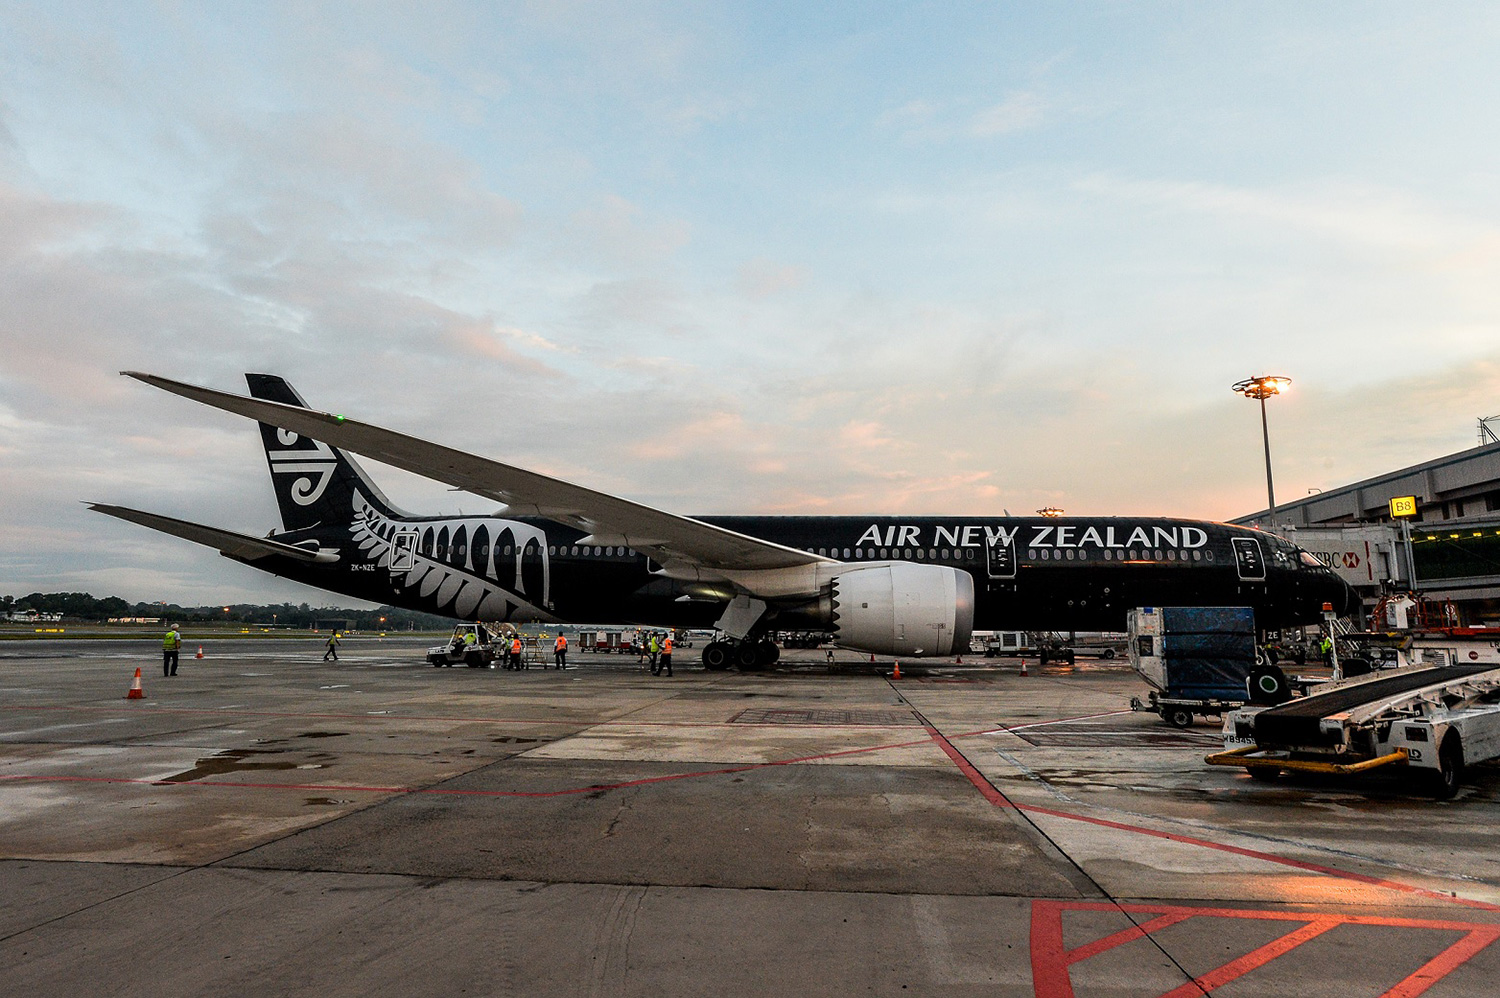 Air-New-Zealand-787-9-Dreamliner-flies-into-Singapore_Photo-2